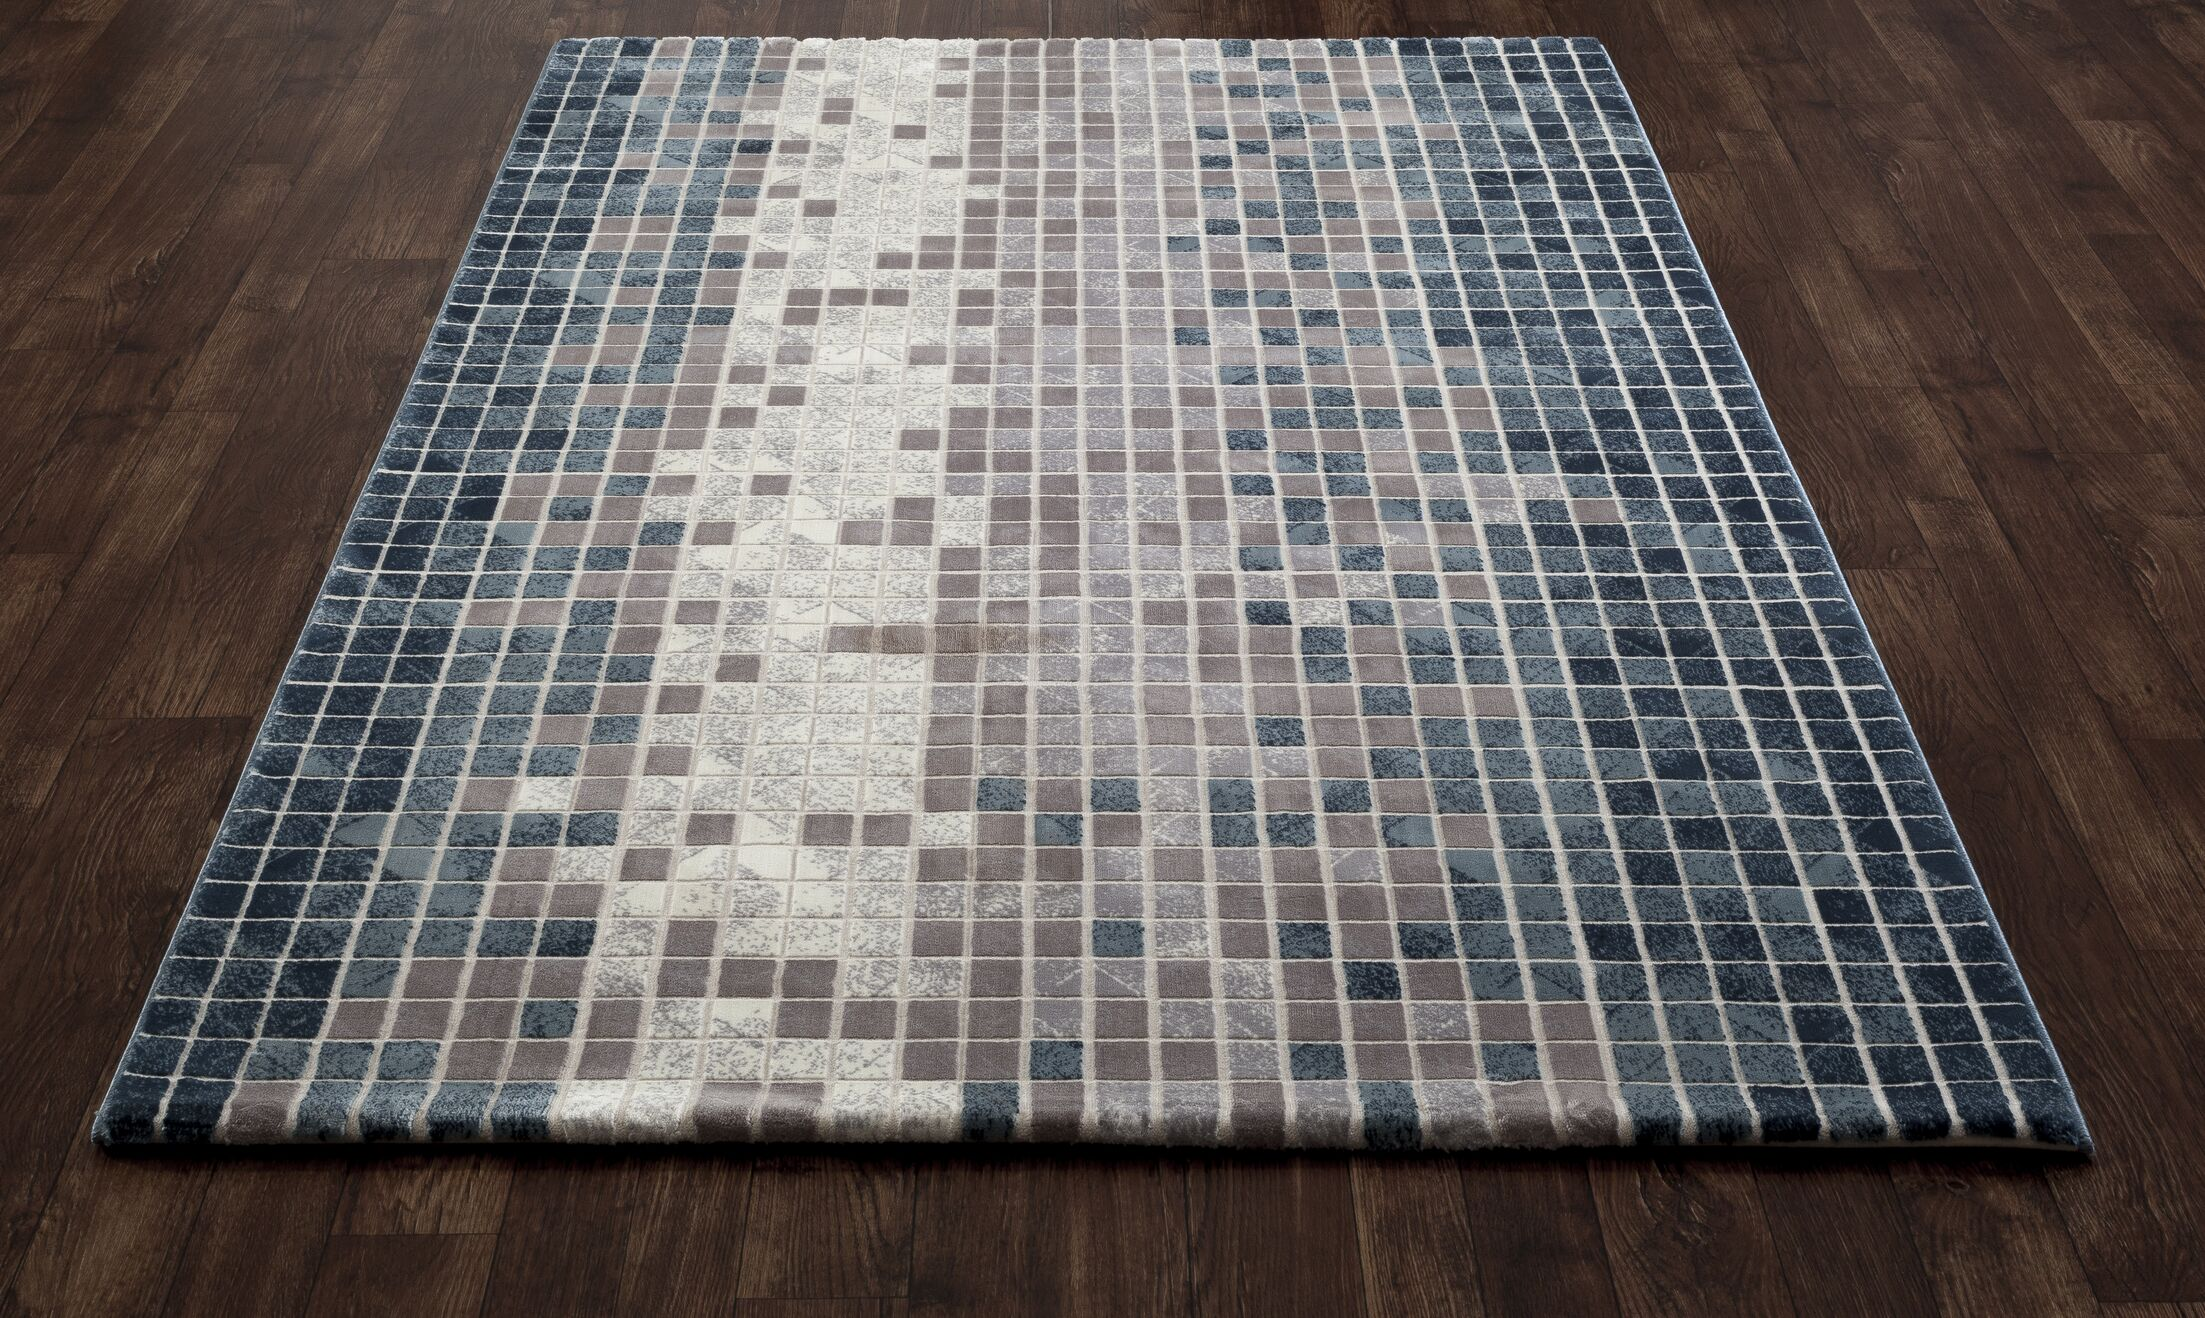 Mcconnell Blue/Gray Area Rug Rug Size: 9'2 x 12'4